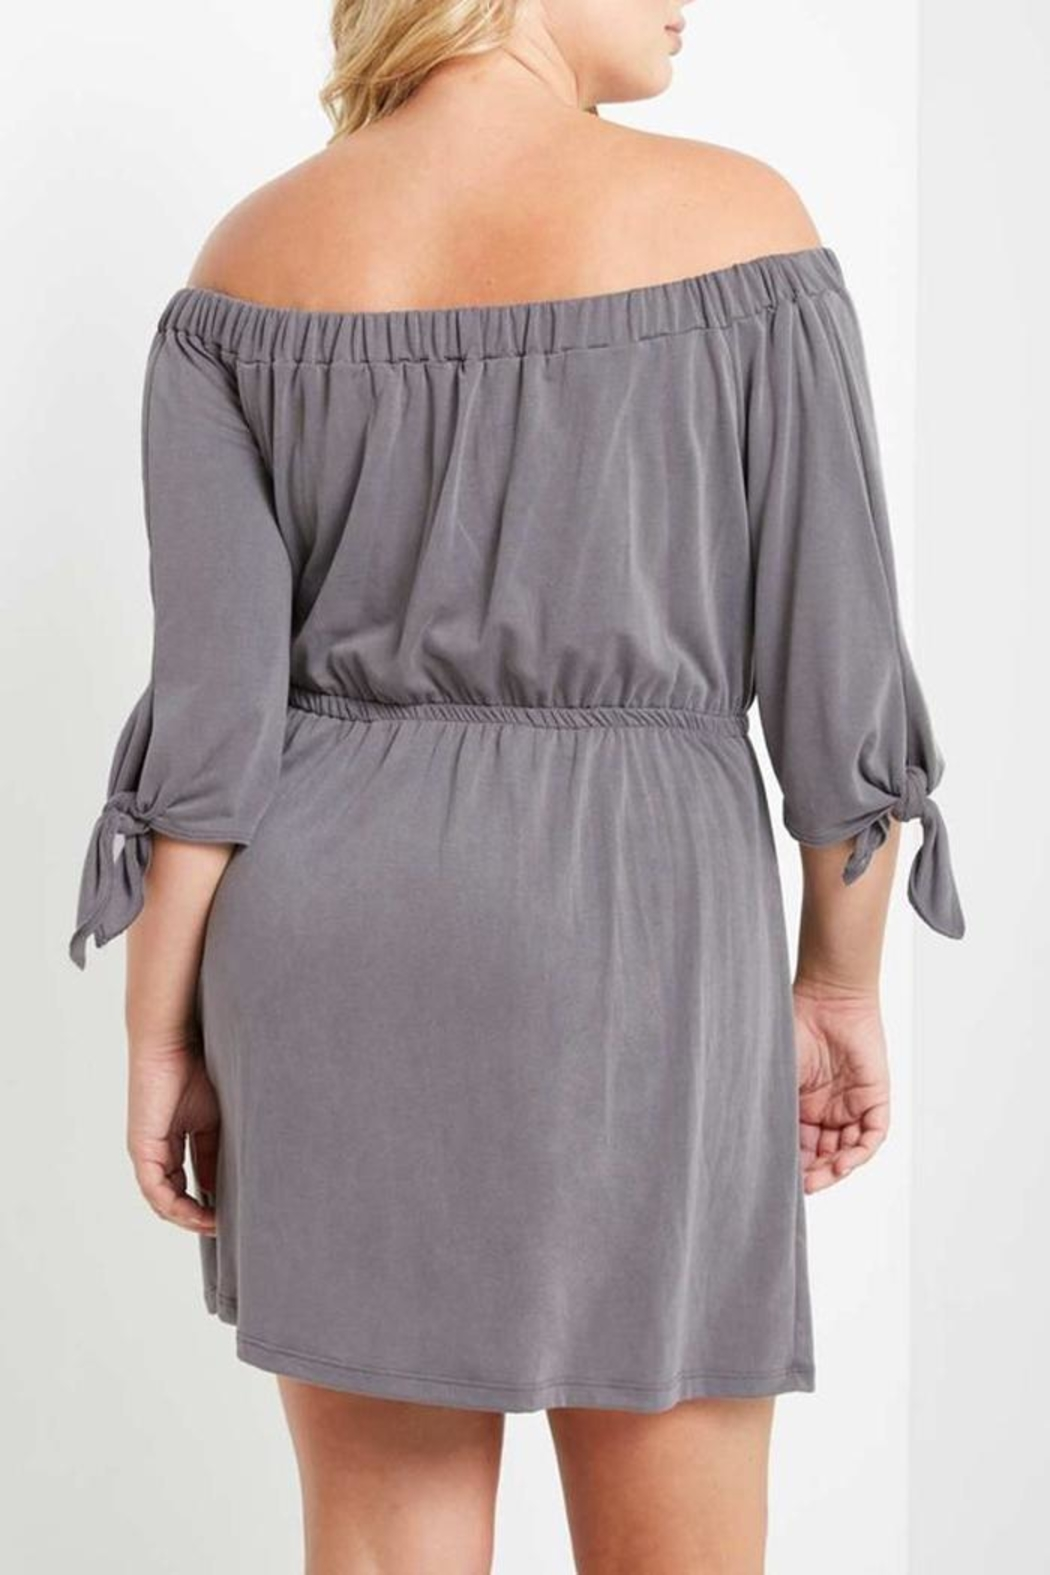 Mai Tai Charwal Off-Shoulder Dress - Back Cropped Image